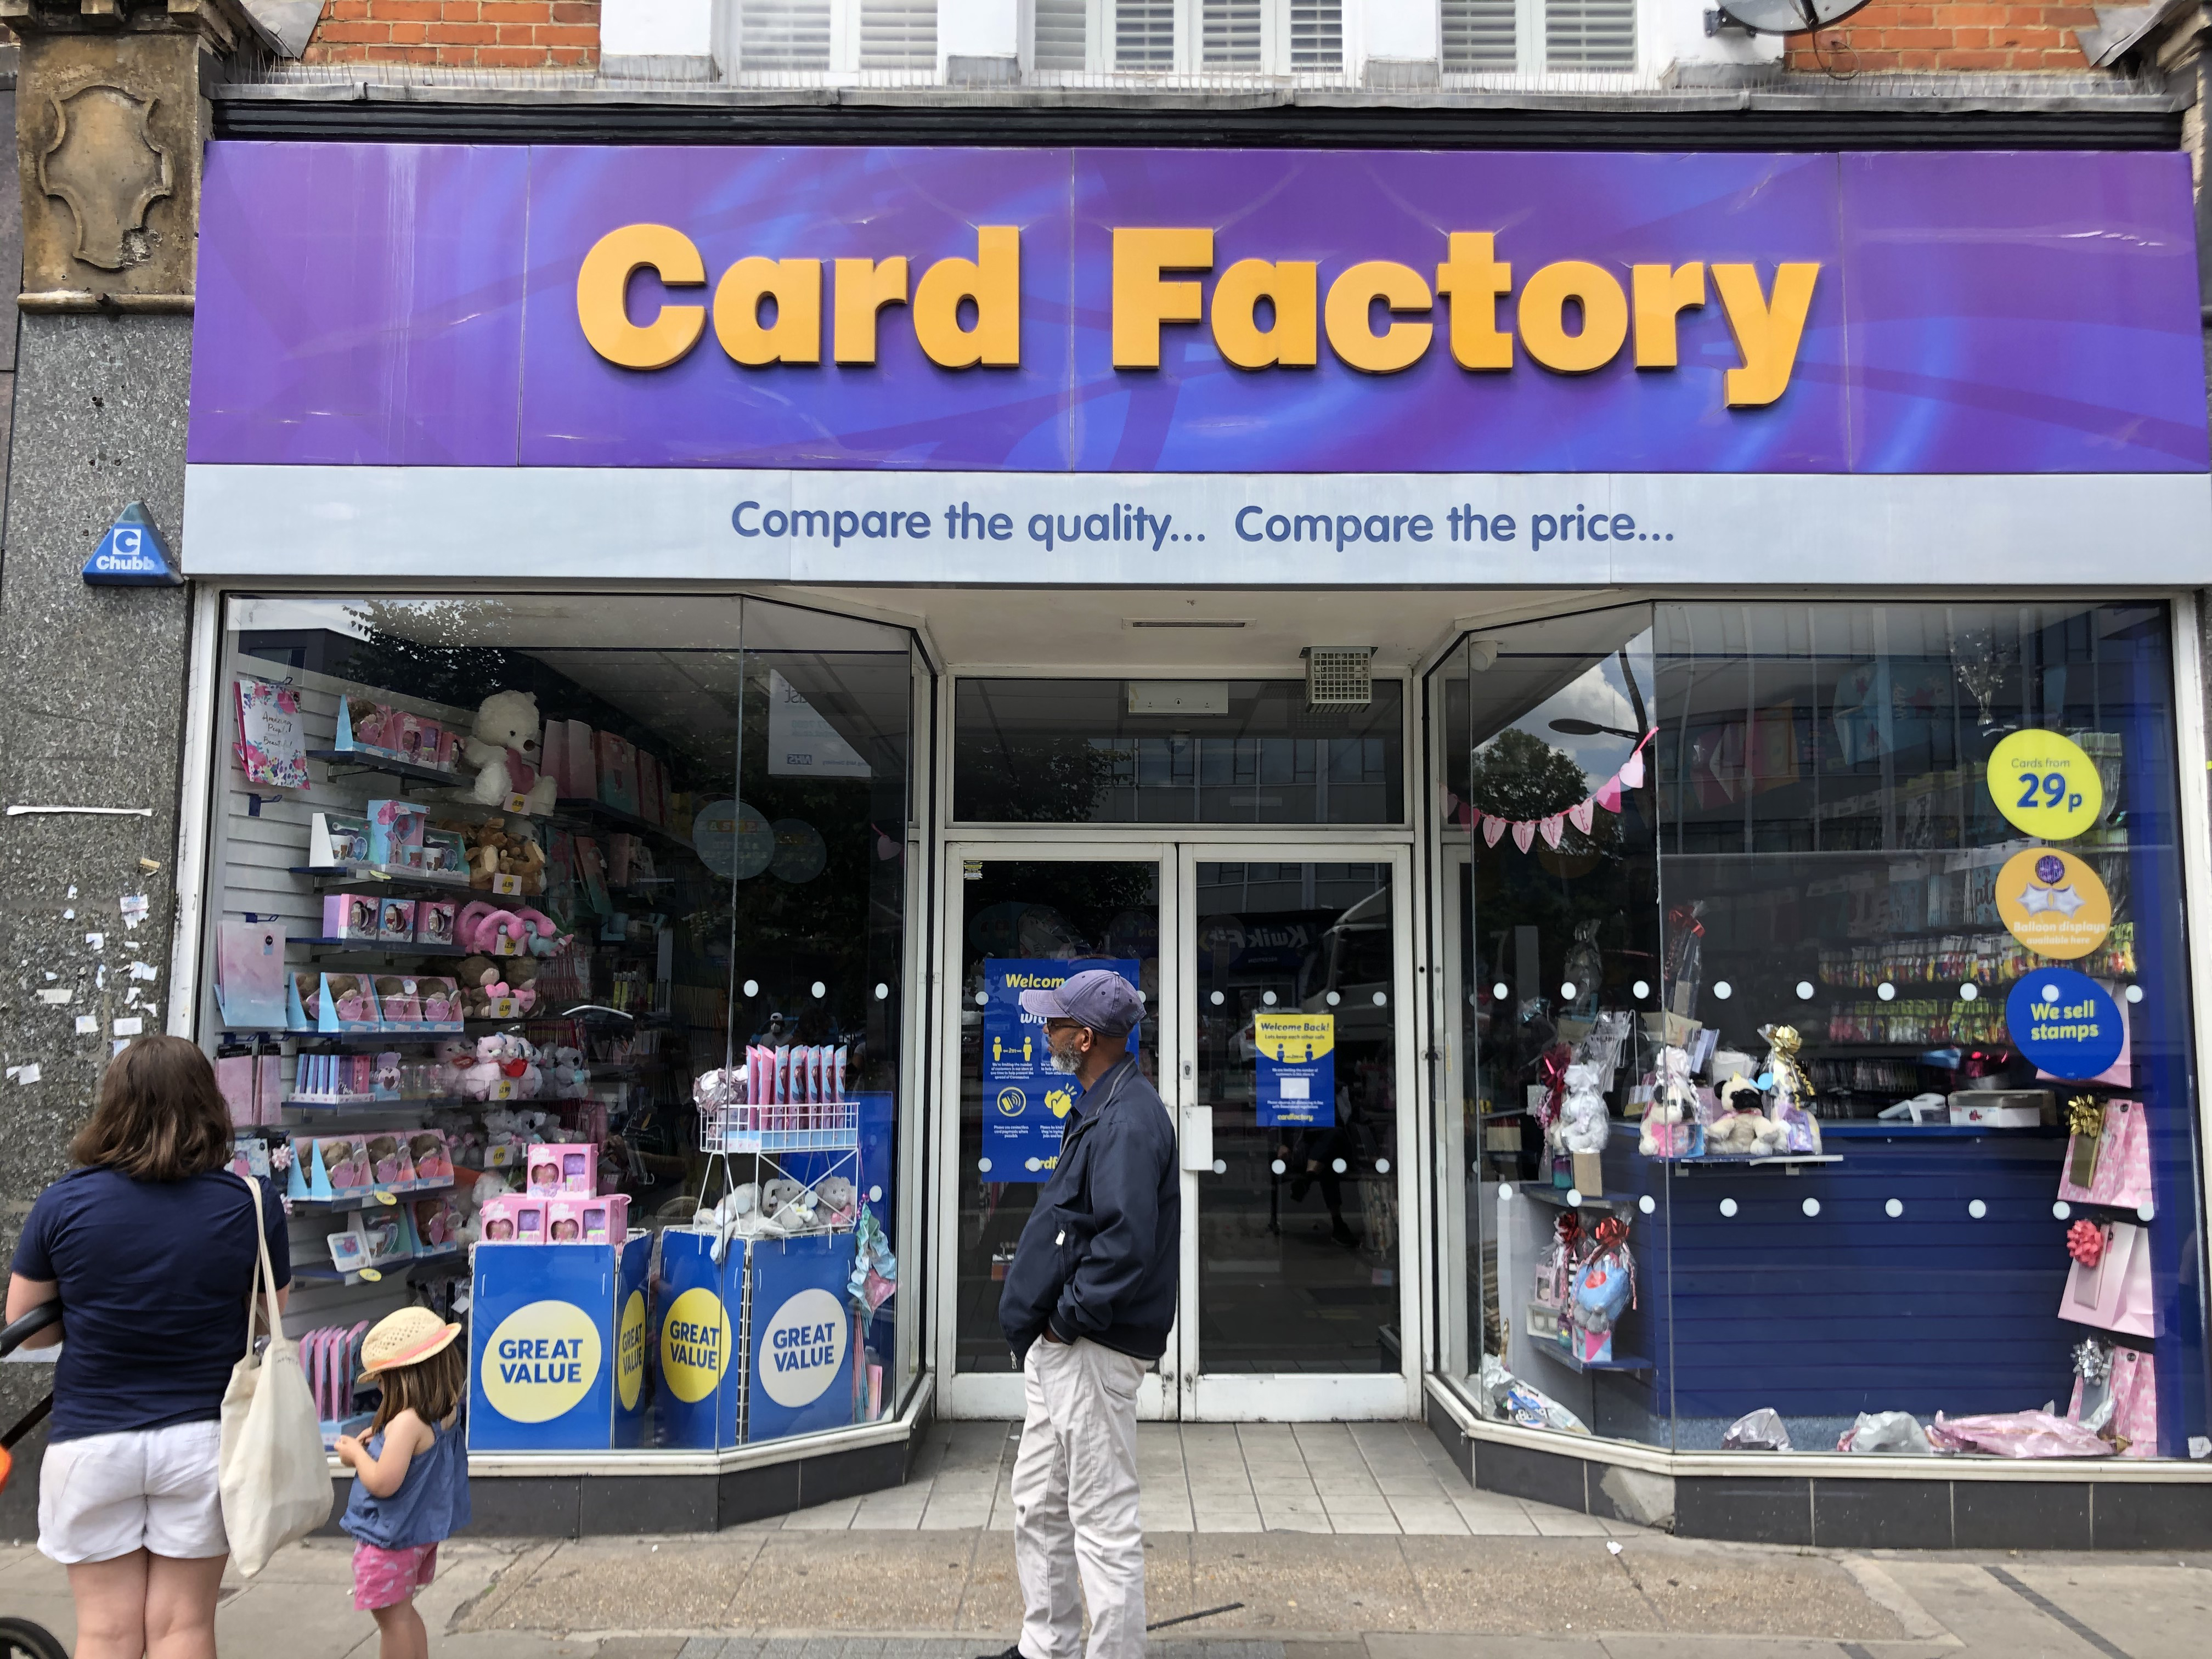 Above: The vast majority of Card Factory shops remain closed as part of a phased re-opening.